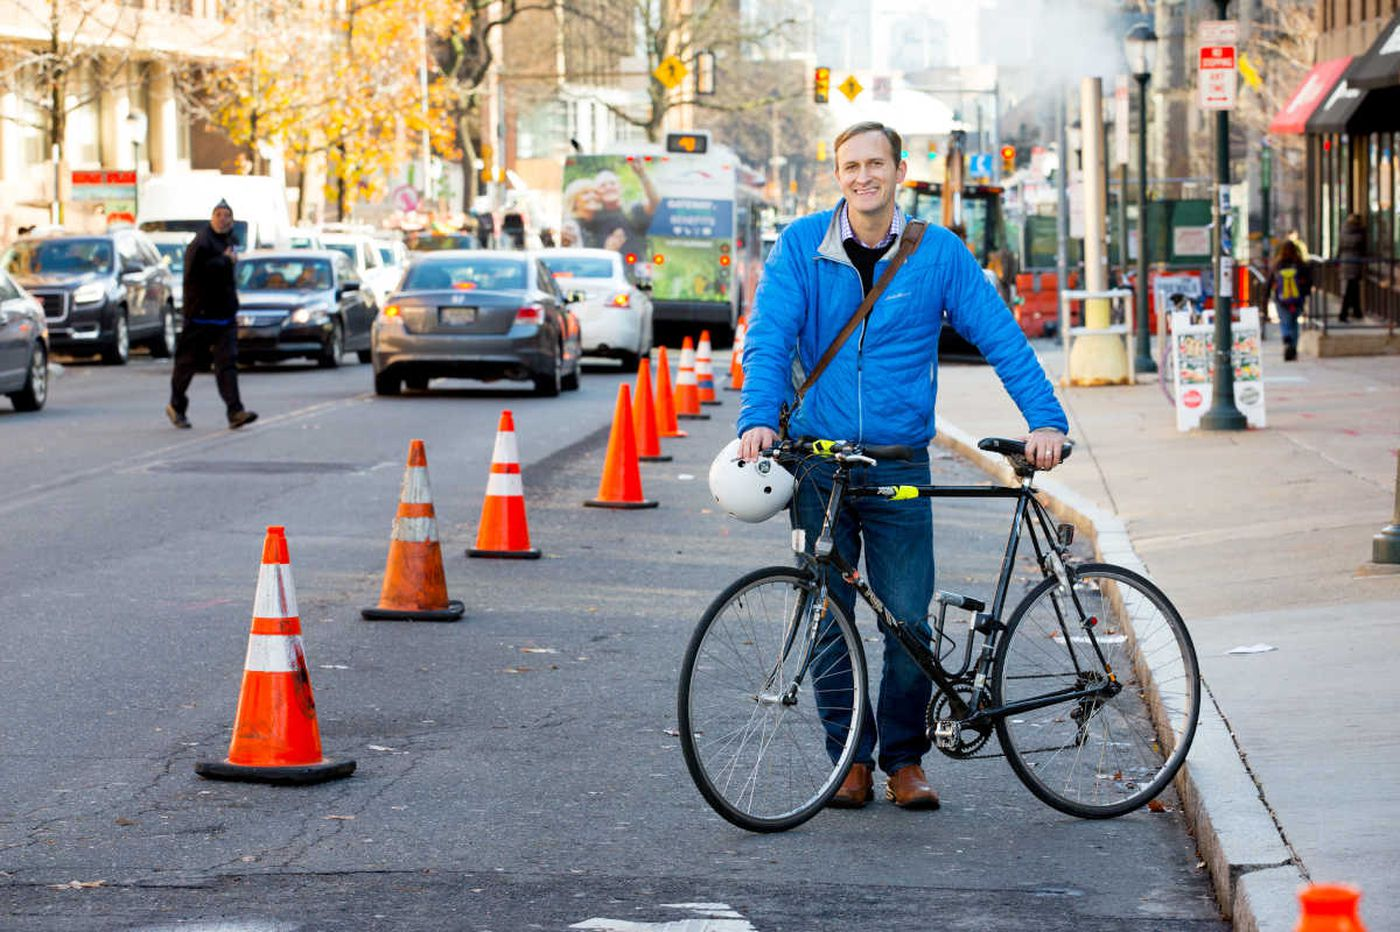 How a Philly guy, fed up with crashes, built his own bike lane